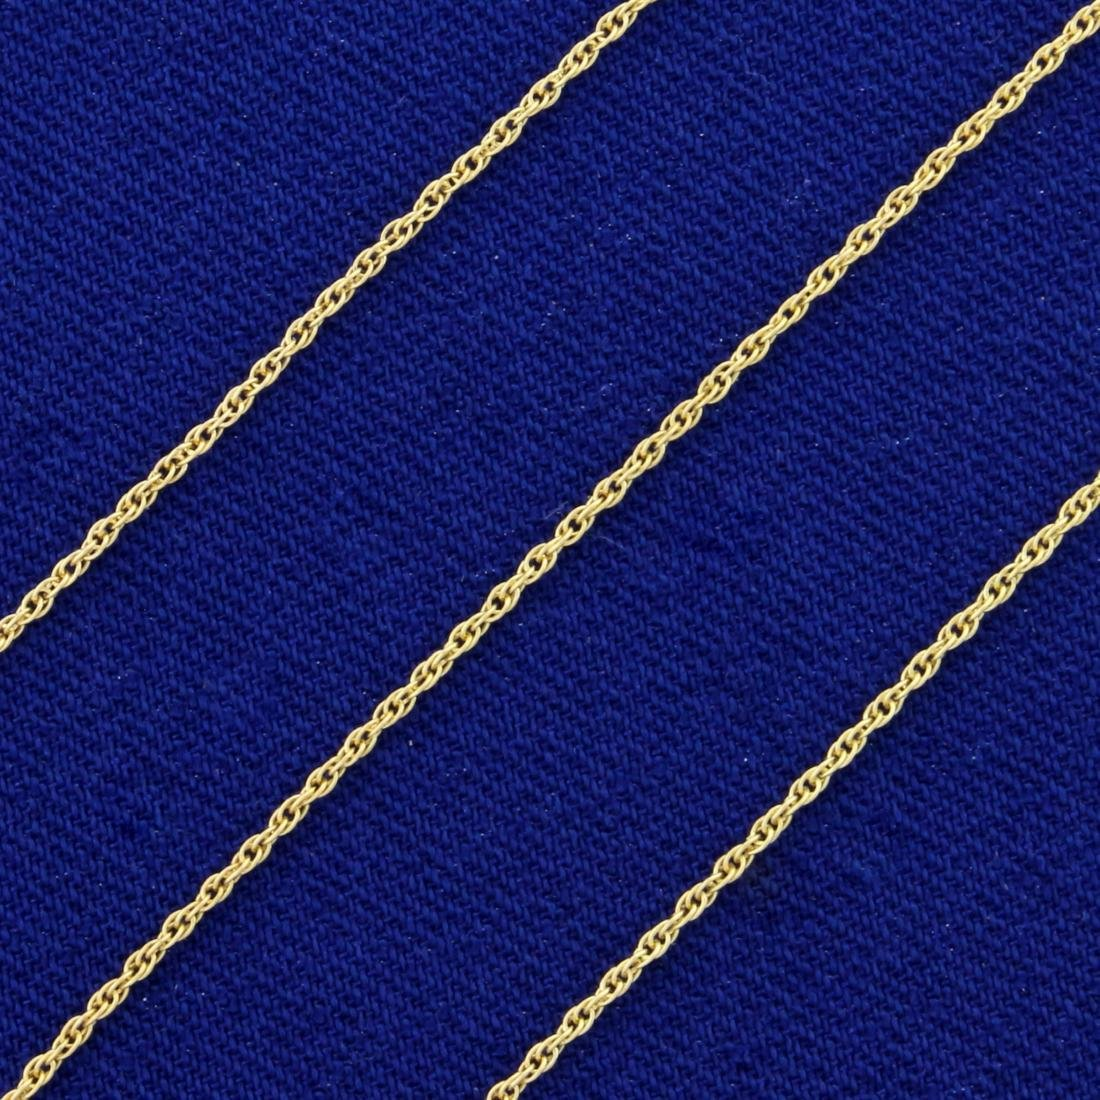 18 Inch Rope Style Neck Chain in 14K Yellow Gold - 2